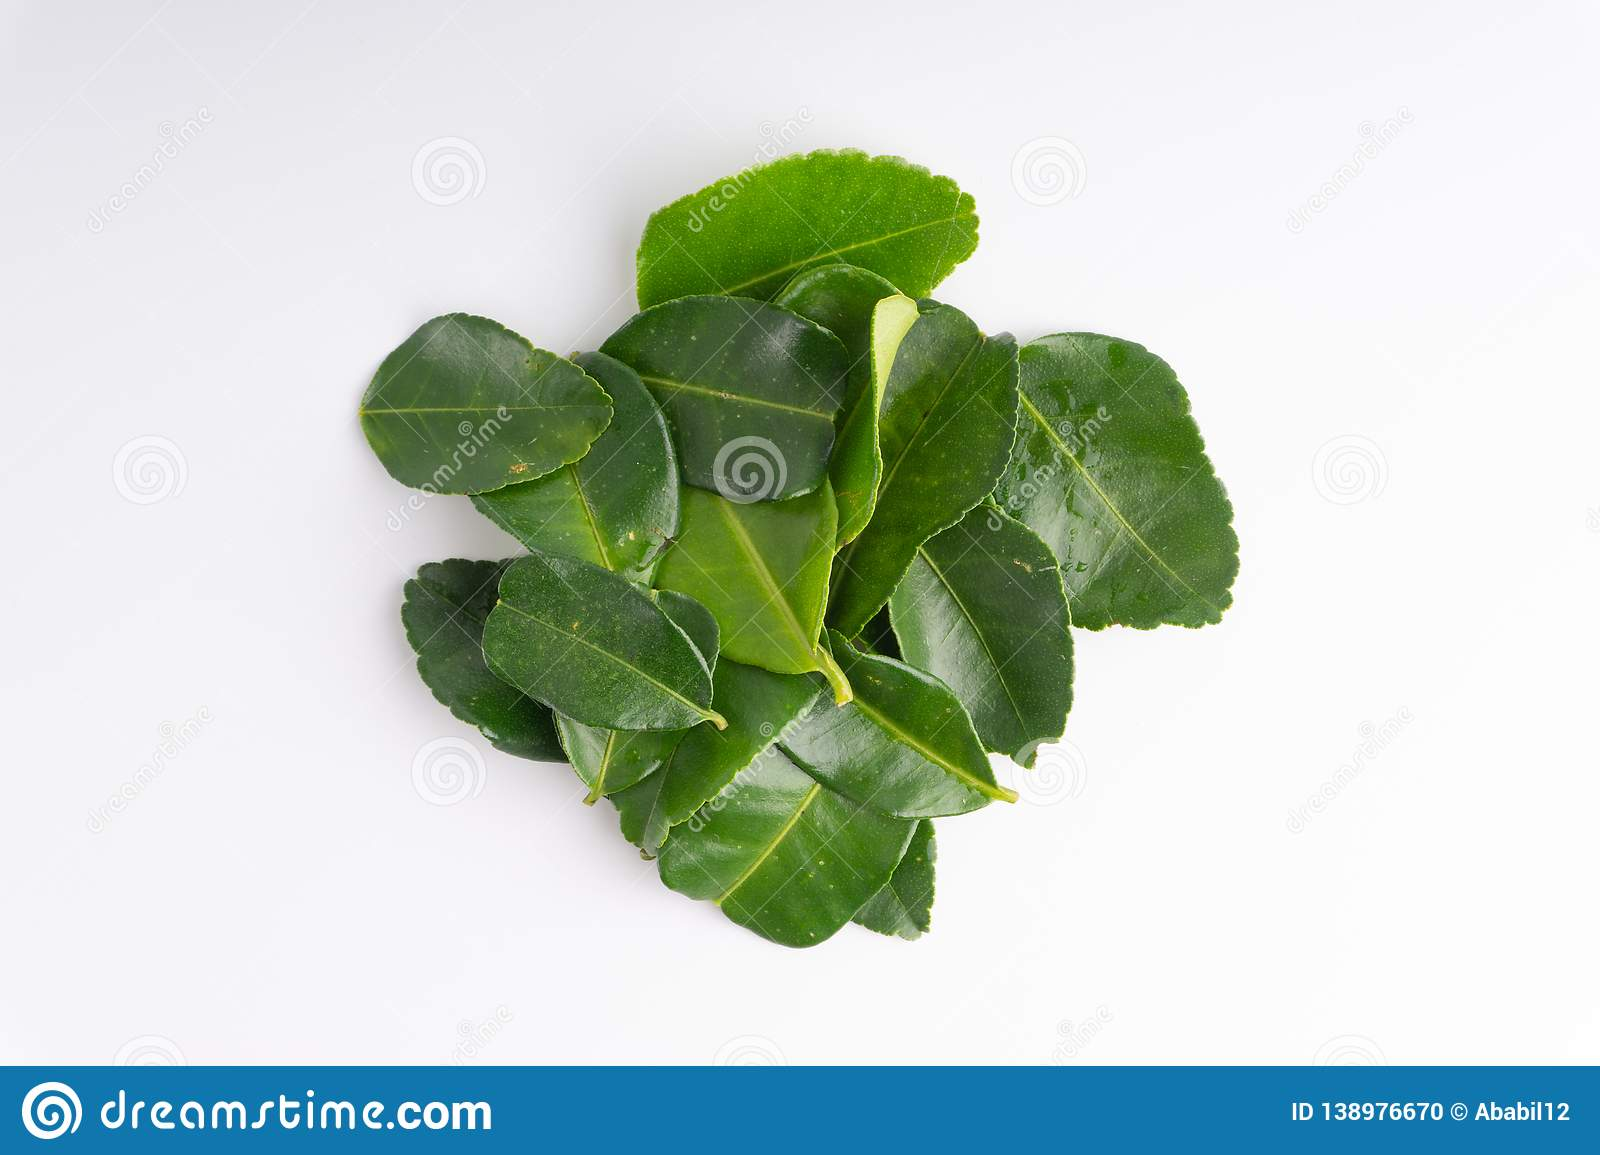 Kaffir lime leaf isolated on white background. Kaffir lime leaf Daun limau purut isolated on white background stock photo